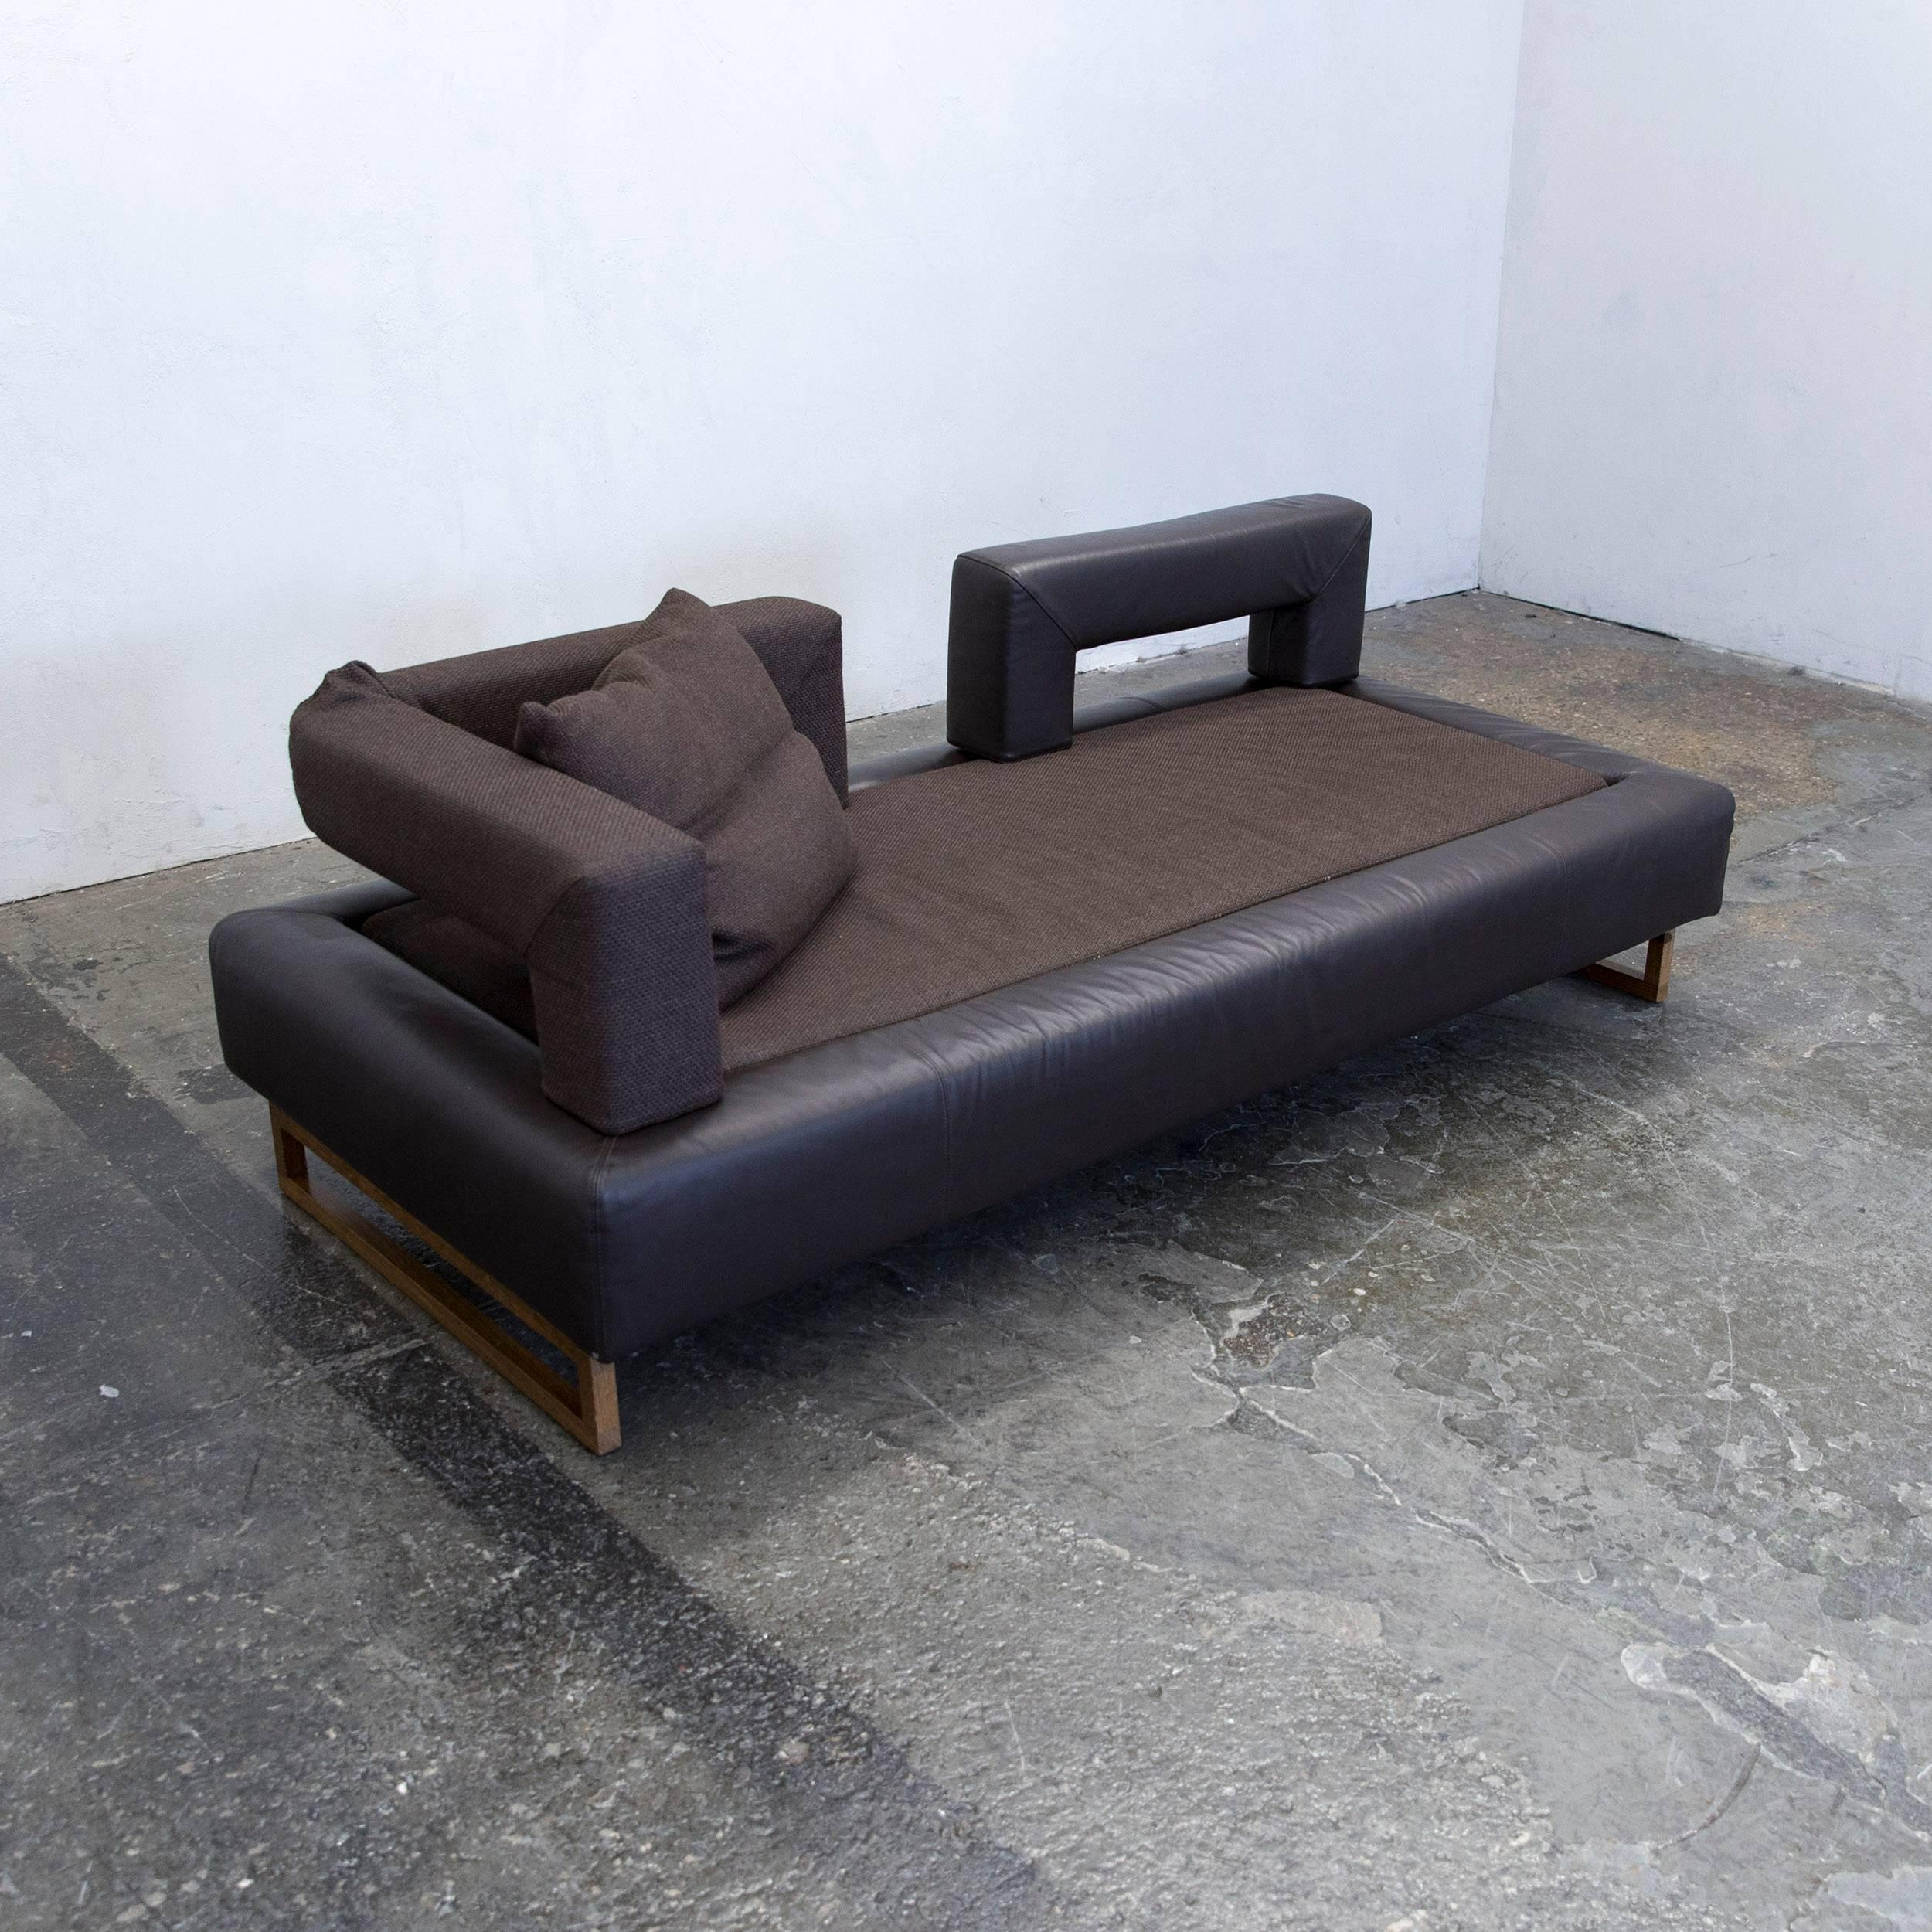 Sofa Rund Leder Rund Couch Affordable Big Sofa Rund Delife Couch Clovis